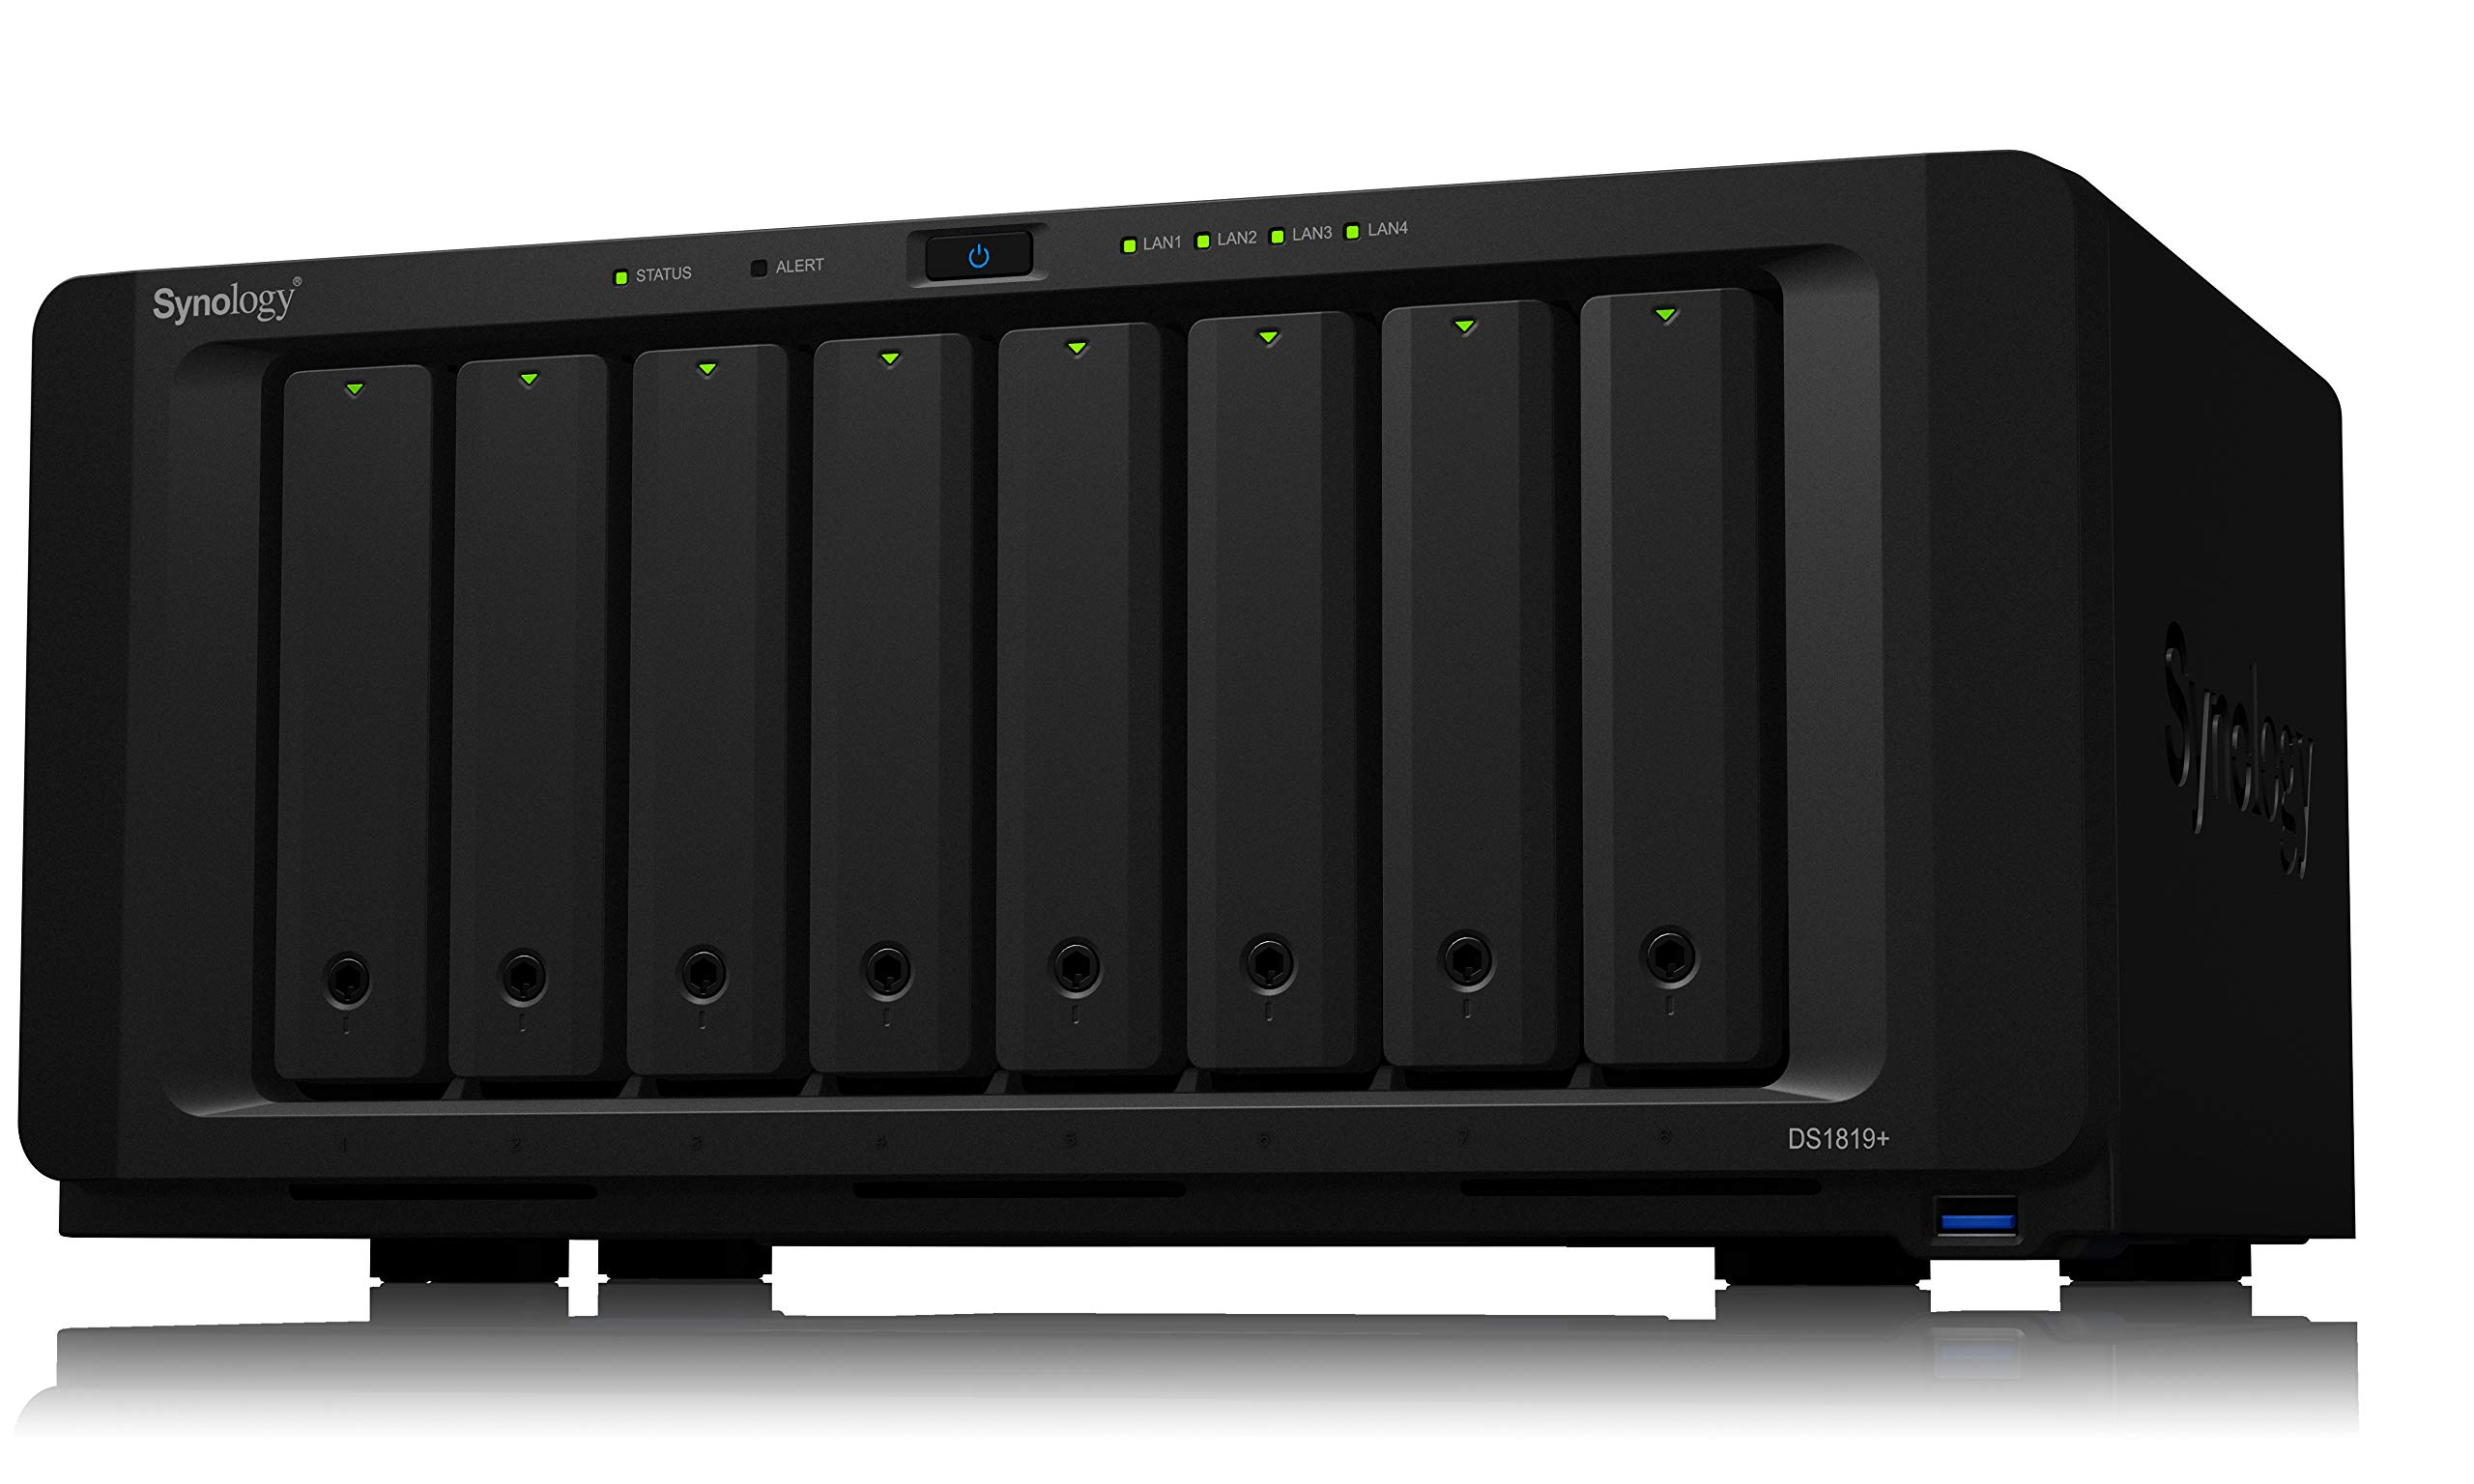 Synology 8 Bay NAS Diskstation (Diskless) (DS1819+) by Synology